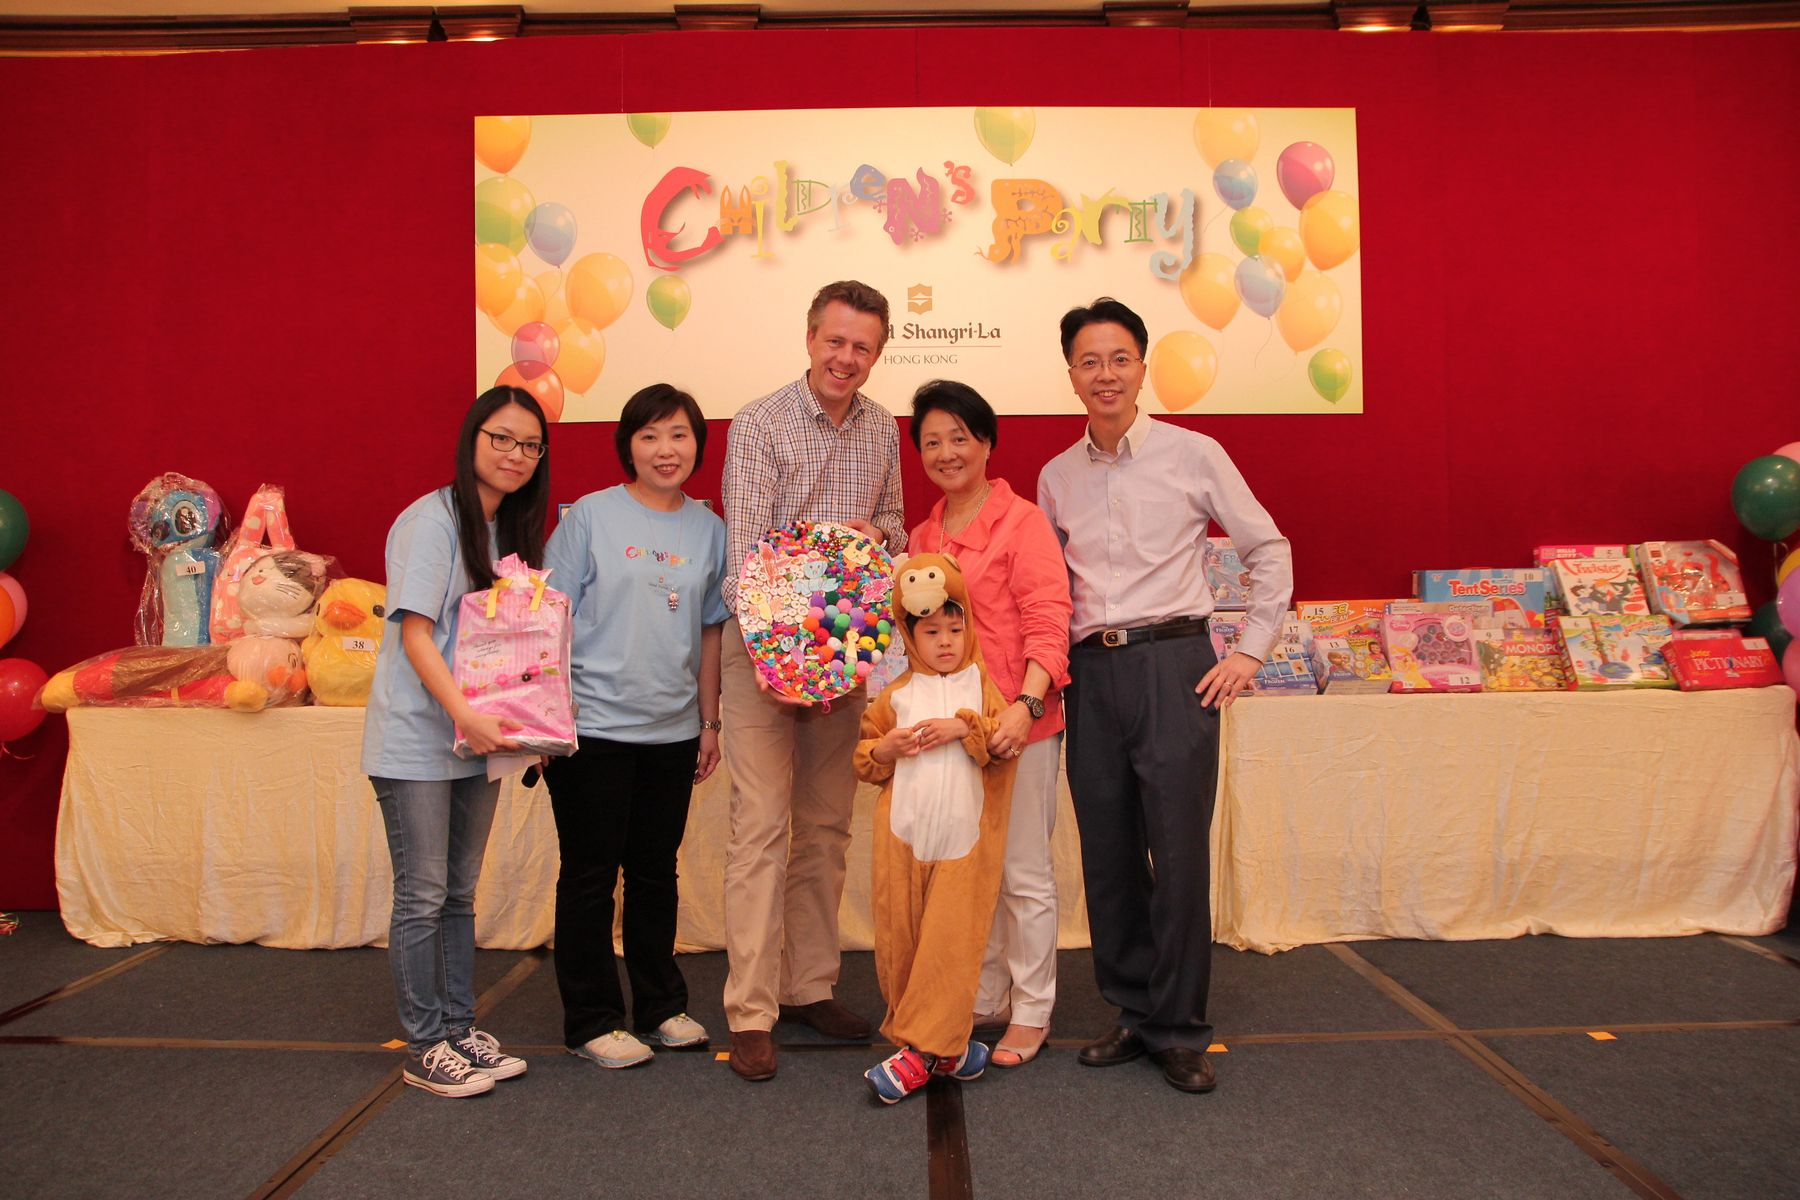 Island Shangri-La, Hong Kong, Celebrated Easter with Chan Chung Hon Centre Children and Parents